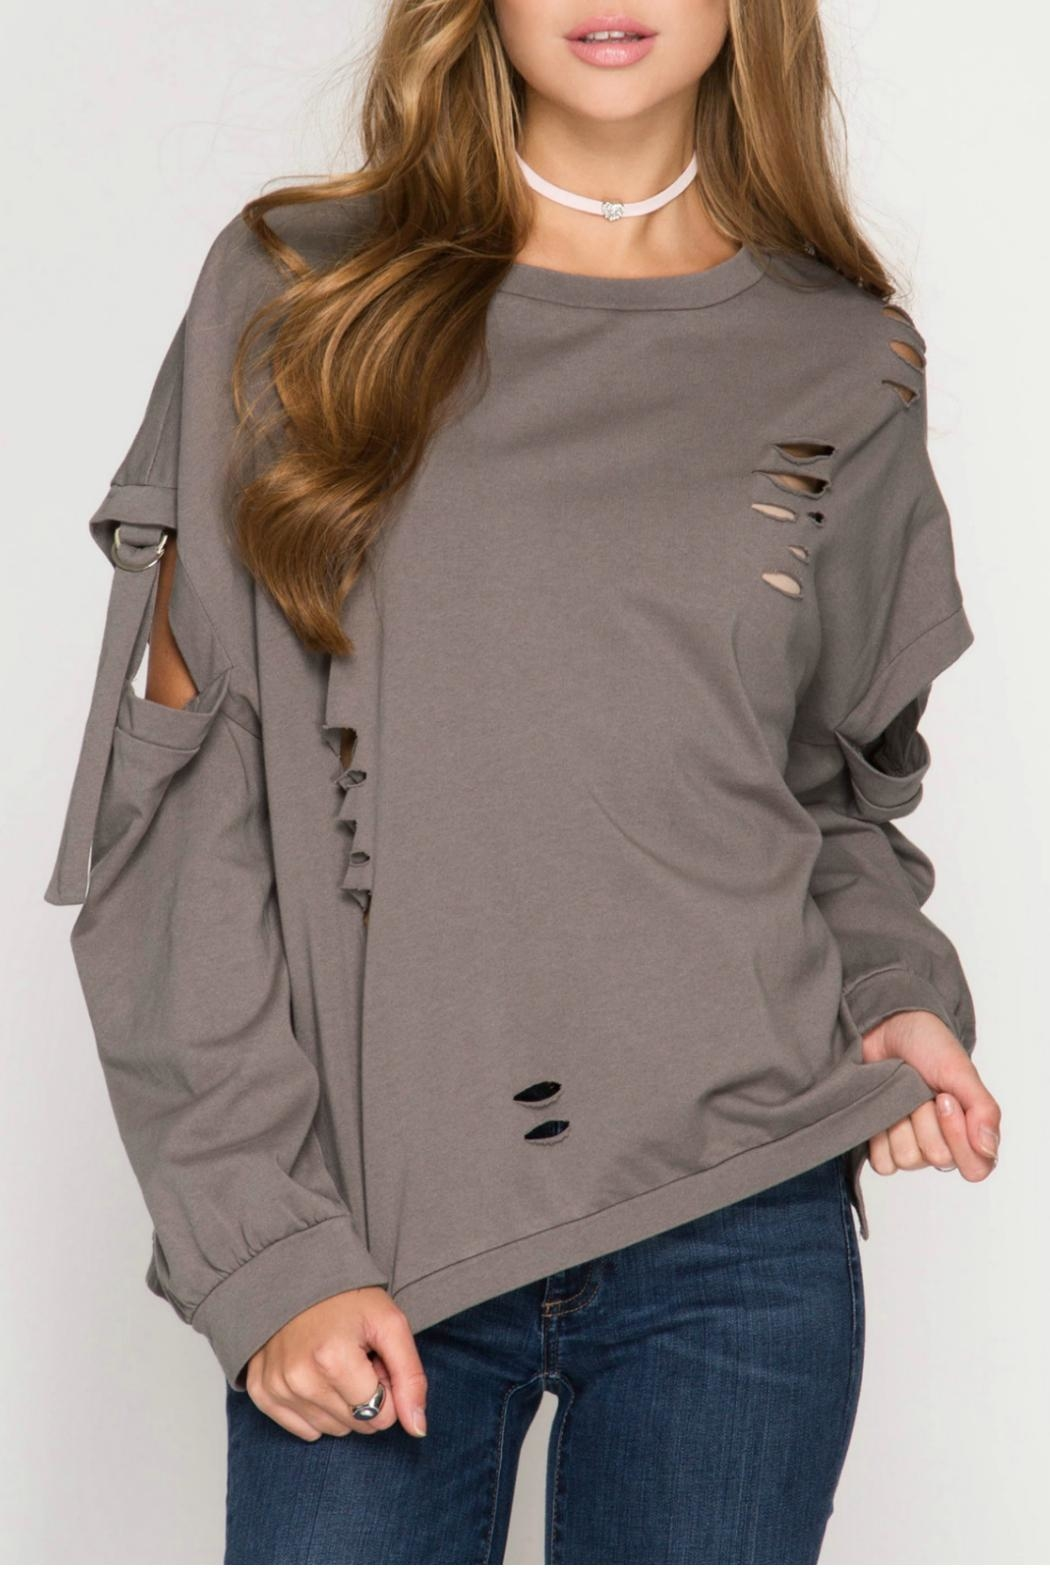 She + Sky Distressed Pullover Sweater - Main Image